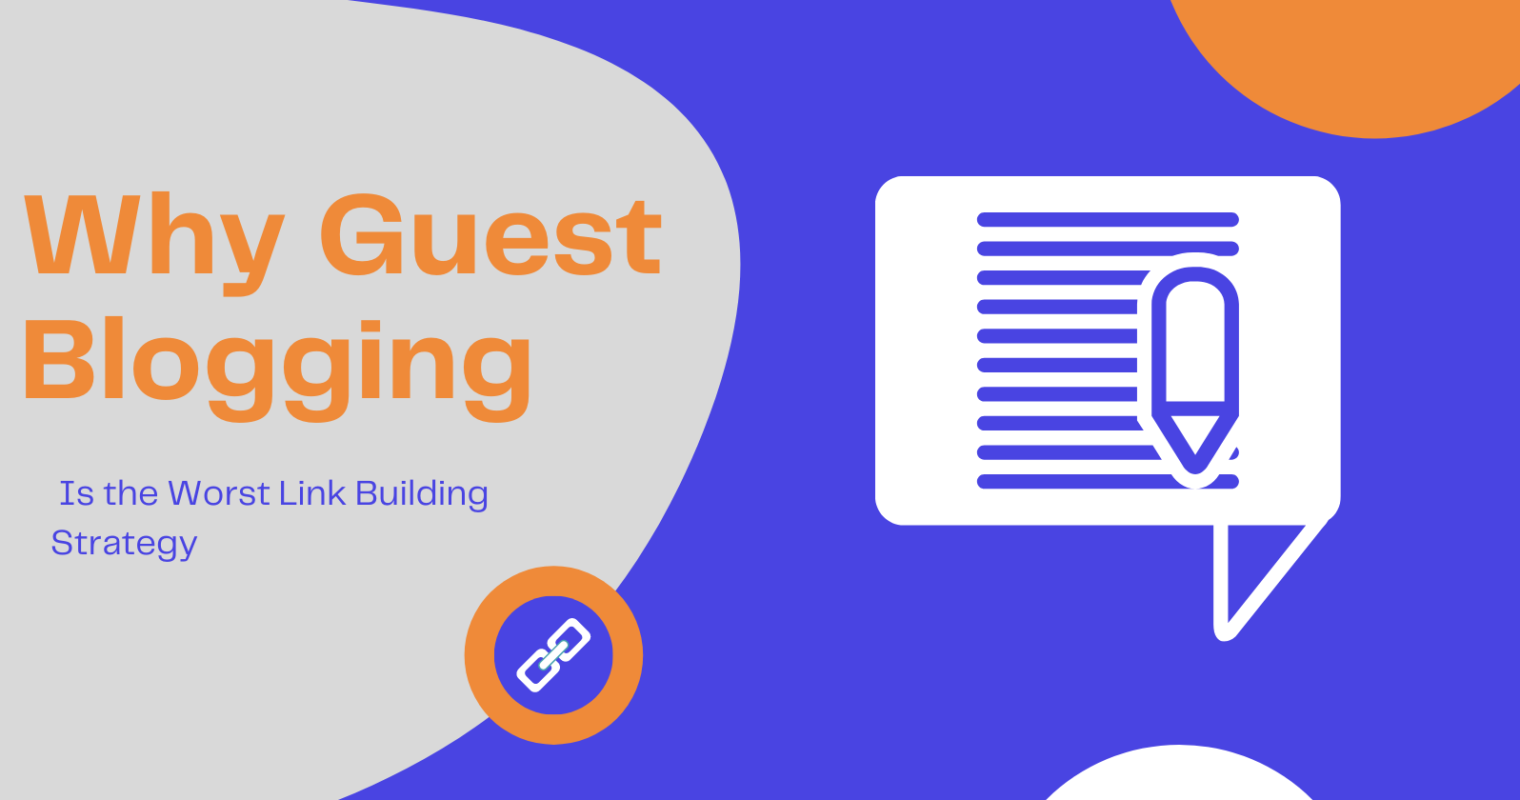 Why Guest Blogging Is the Worst Link Building Strategy